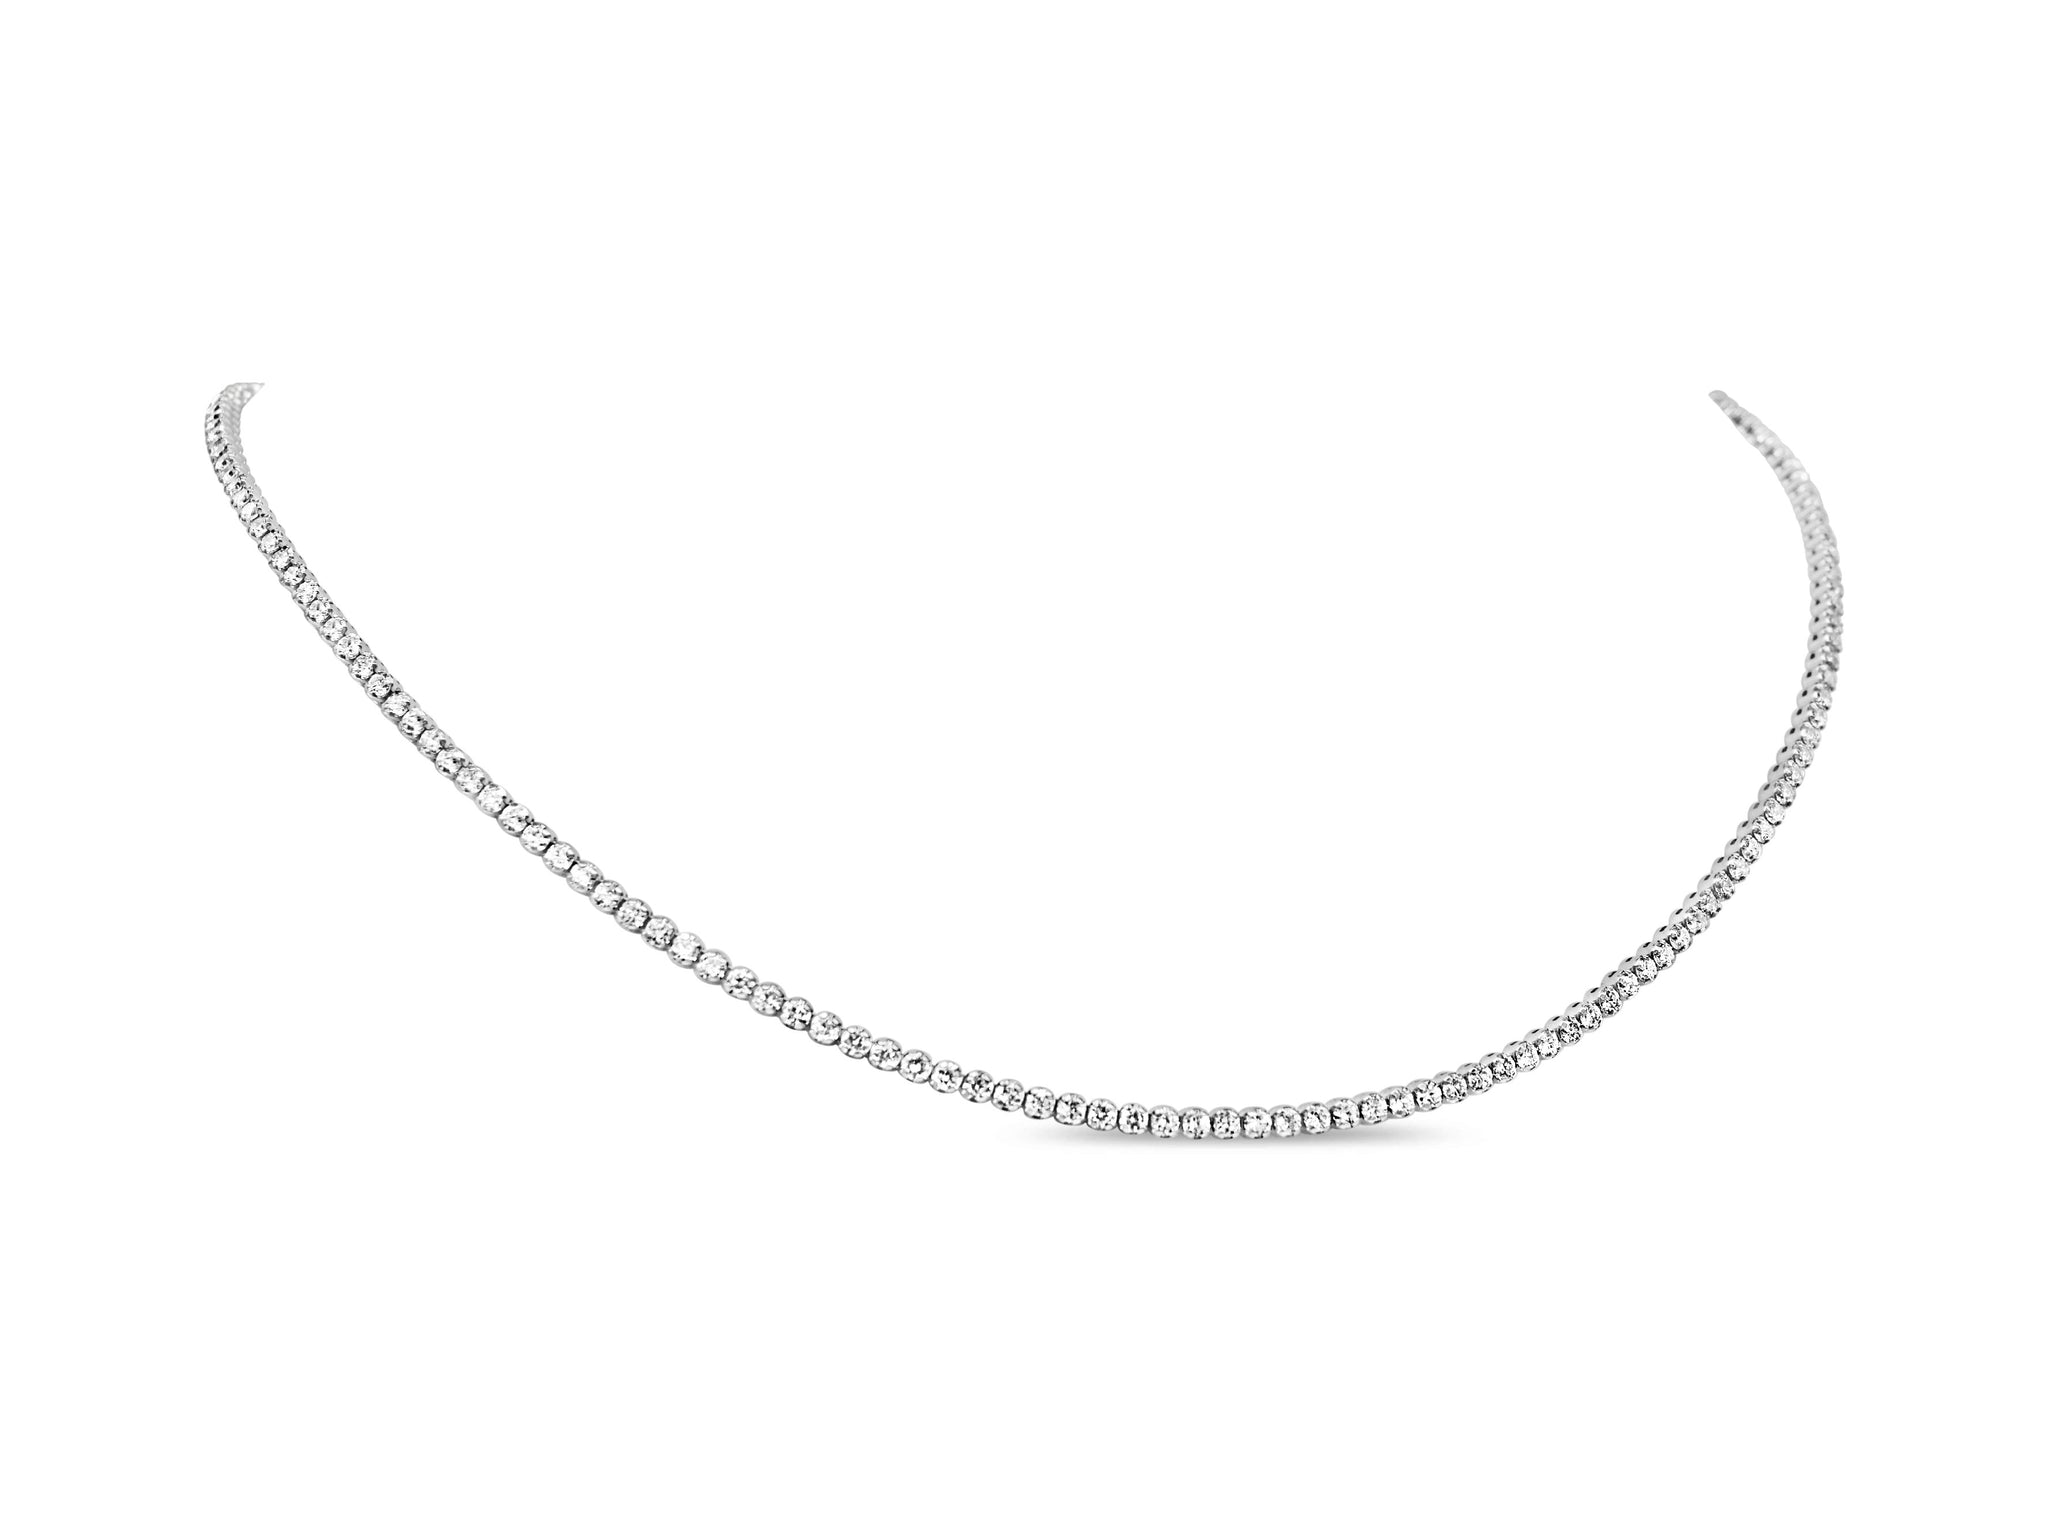 Everyday Dainty Diamond Tennis Necklace